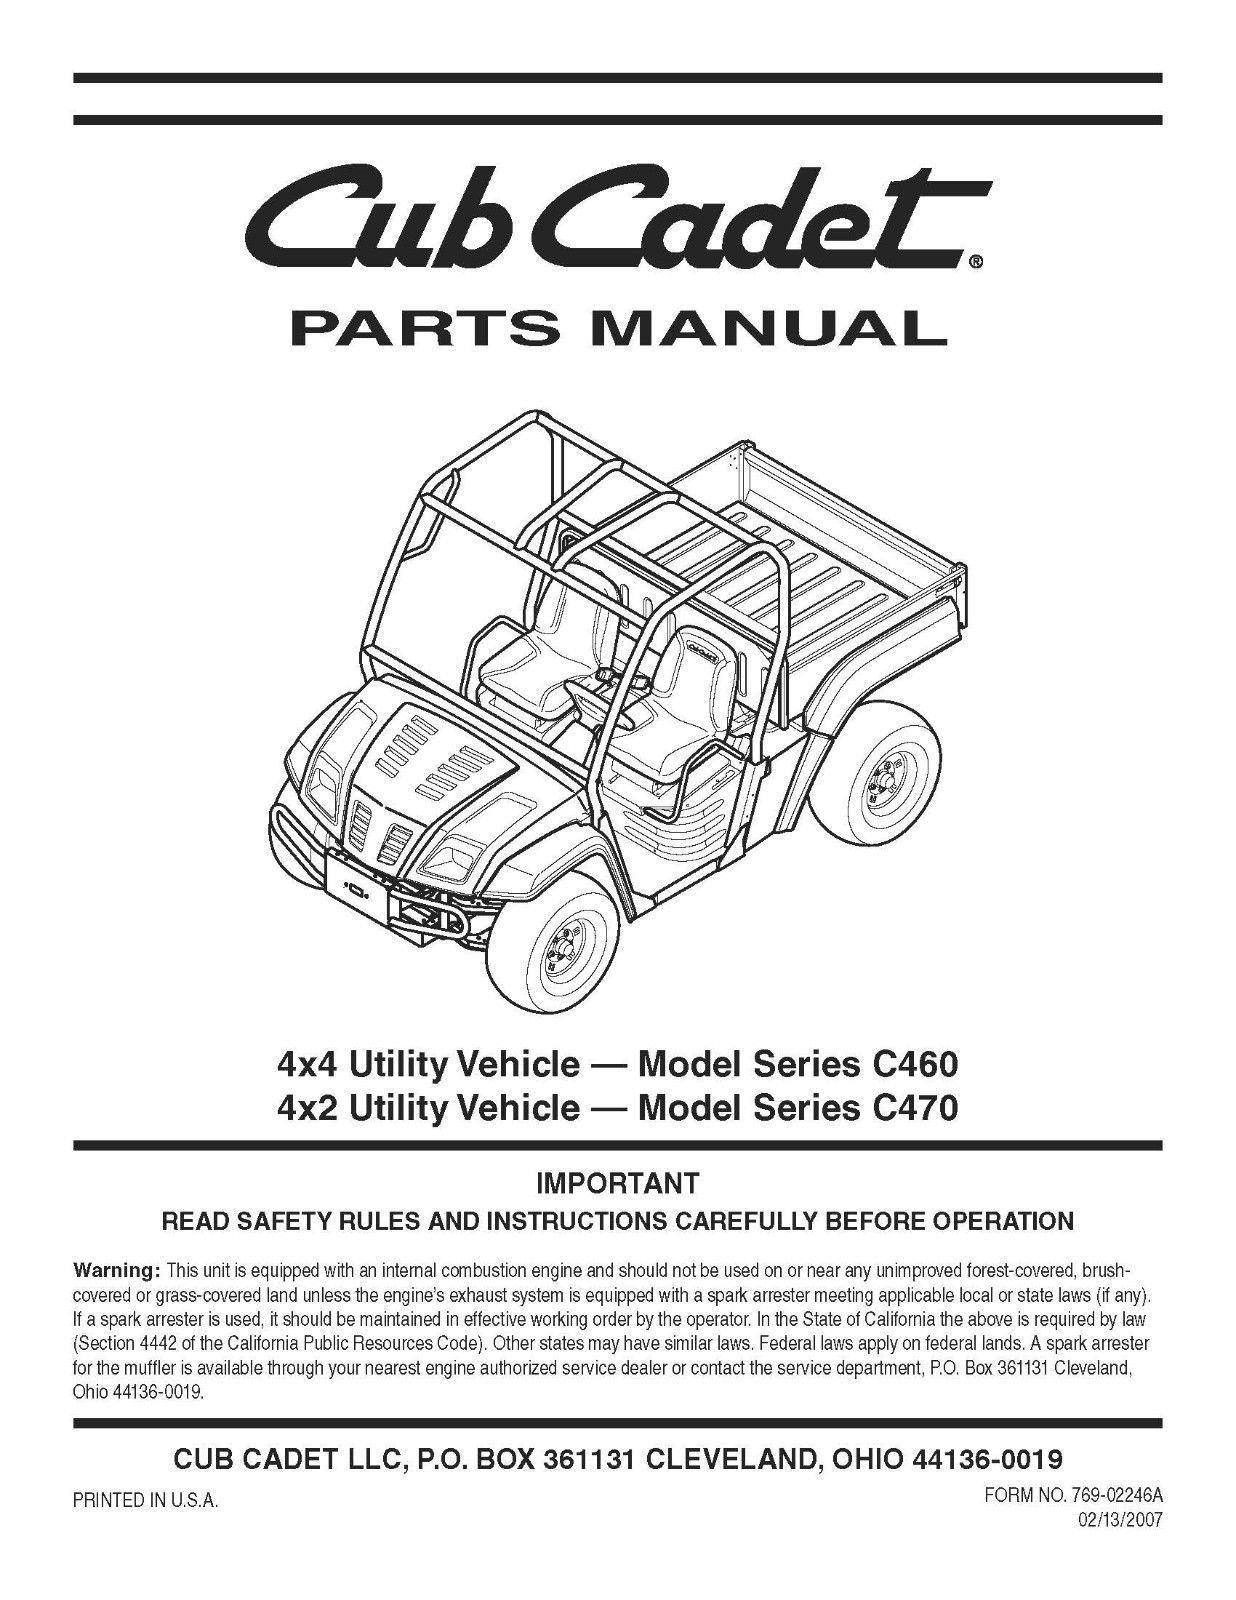 Cub Cadet 4x4 & 4 x 2 Utility Parts Manual Model No. C460-C470